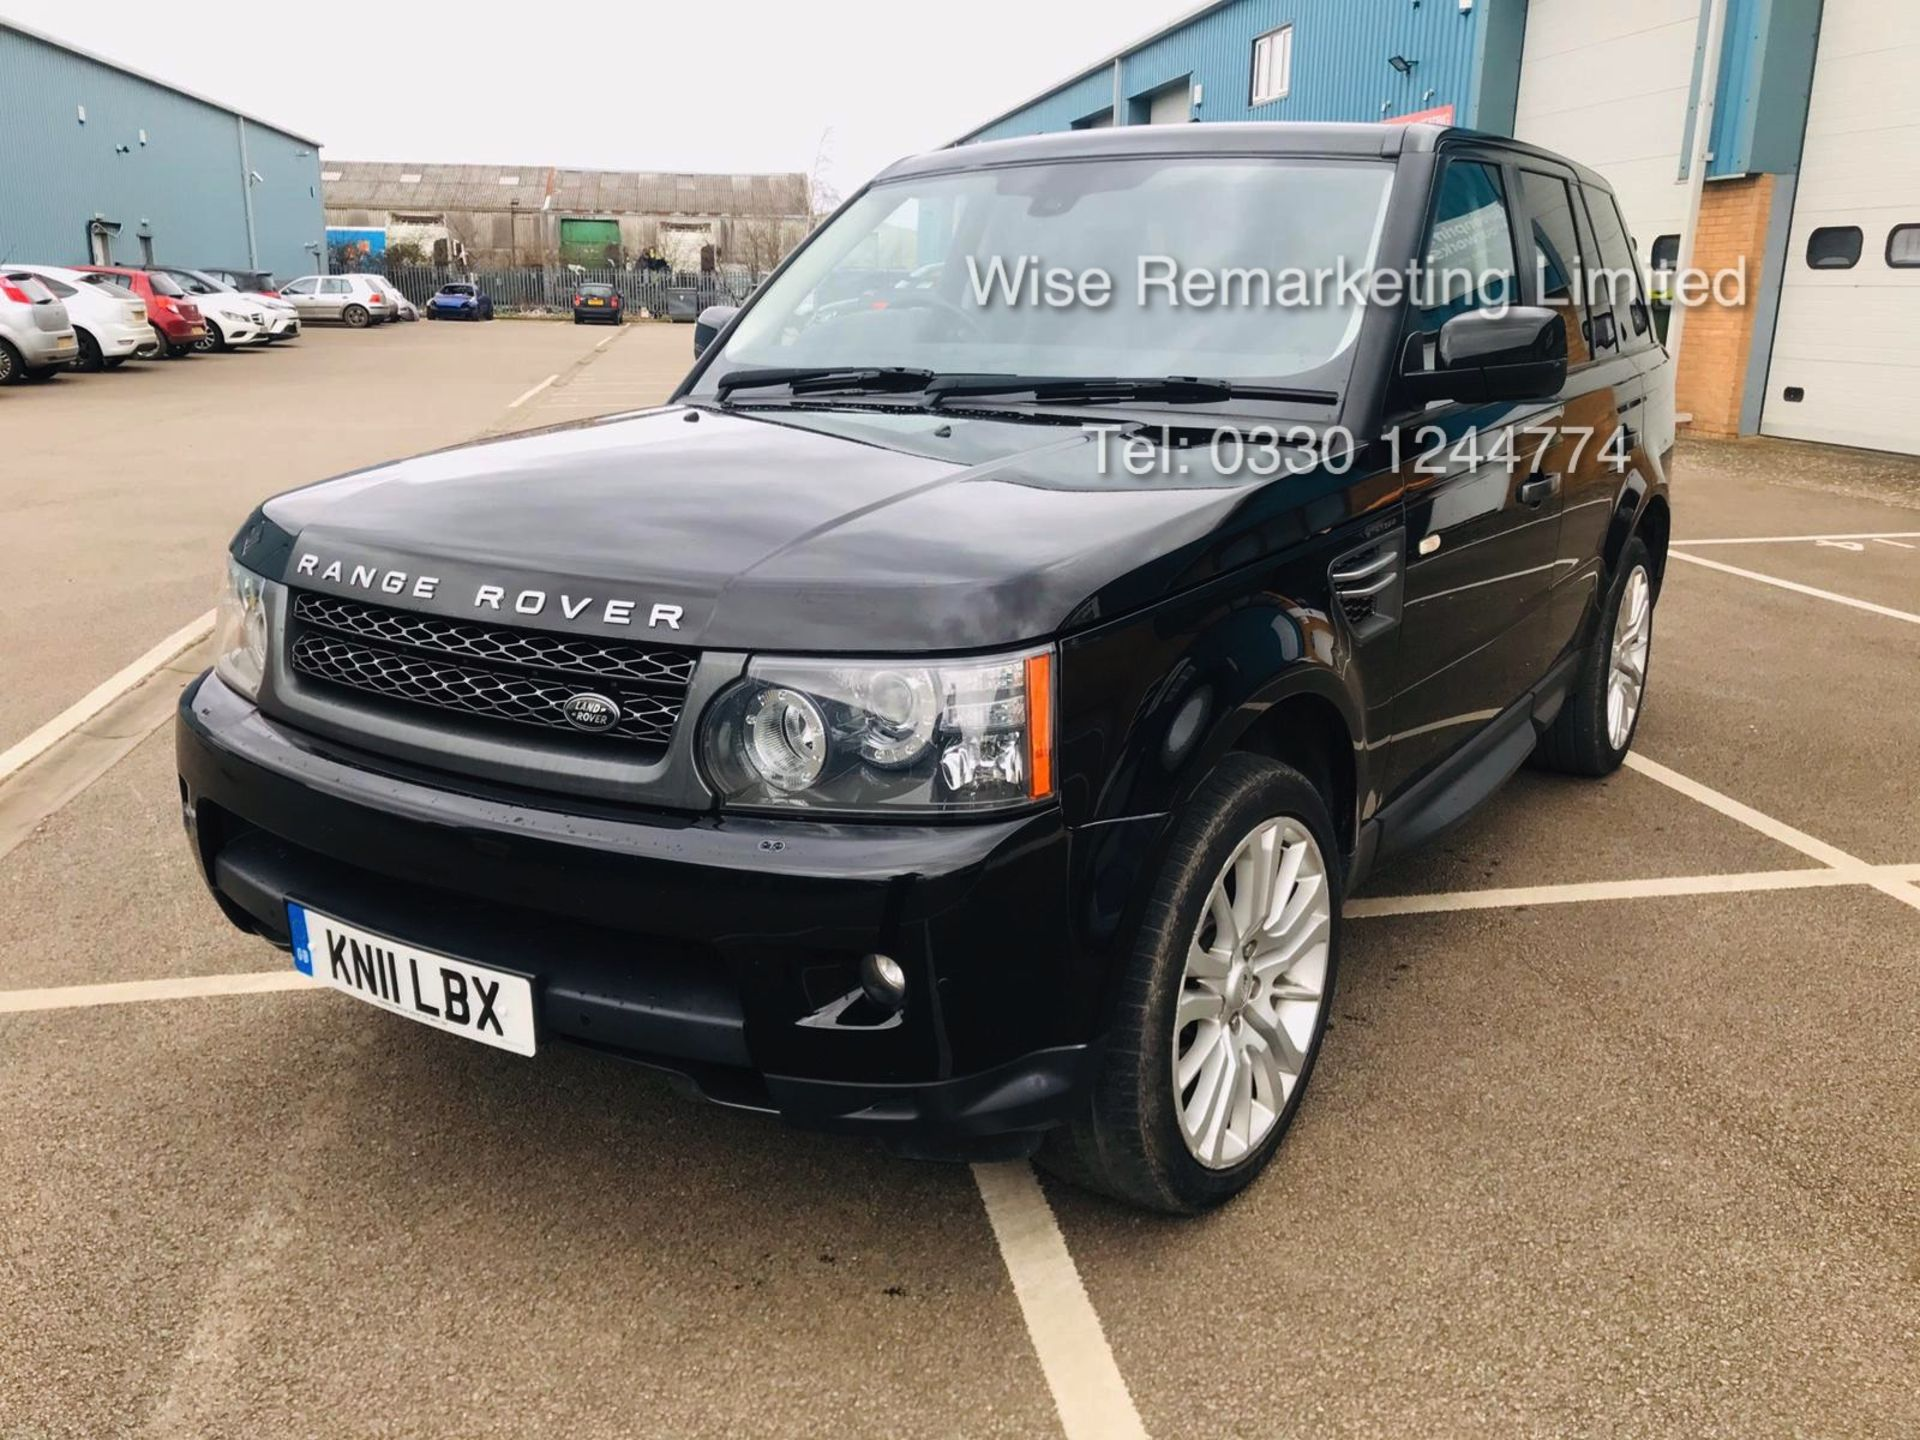 Range Rover Sport SE 3.0 TDV6 Automatic - 2011 11 Reg - 1 Keeper From New - Service History - Image 3 of 21